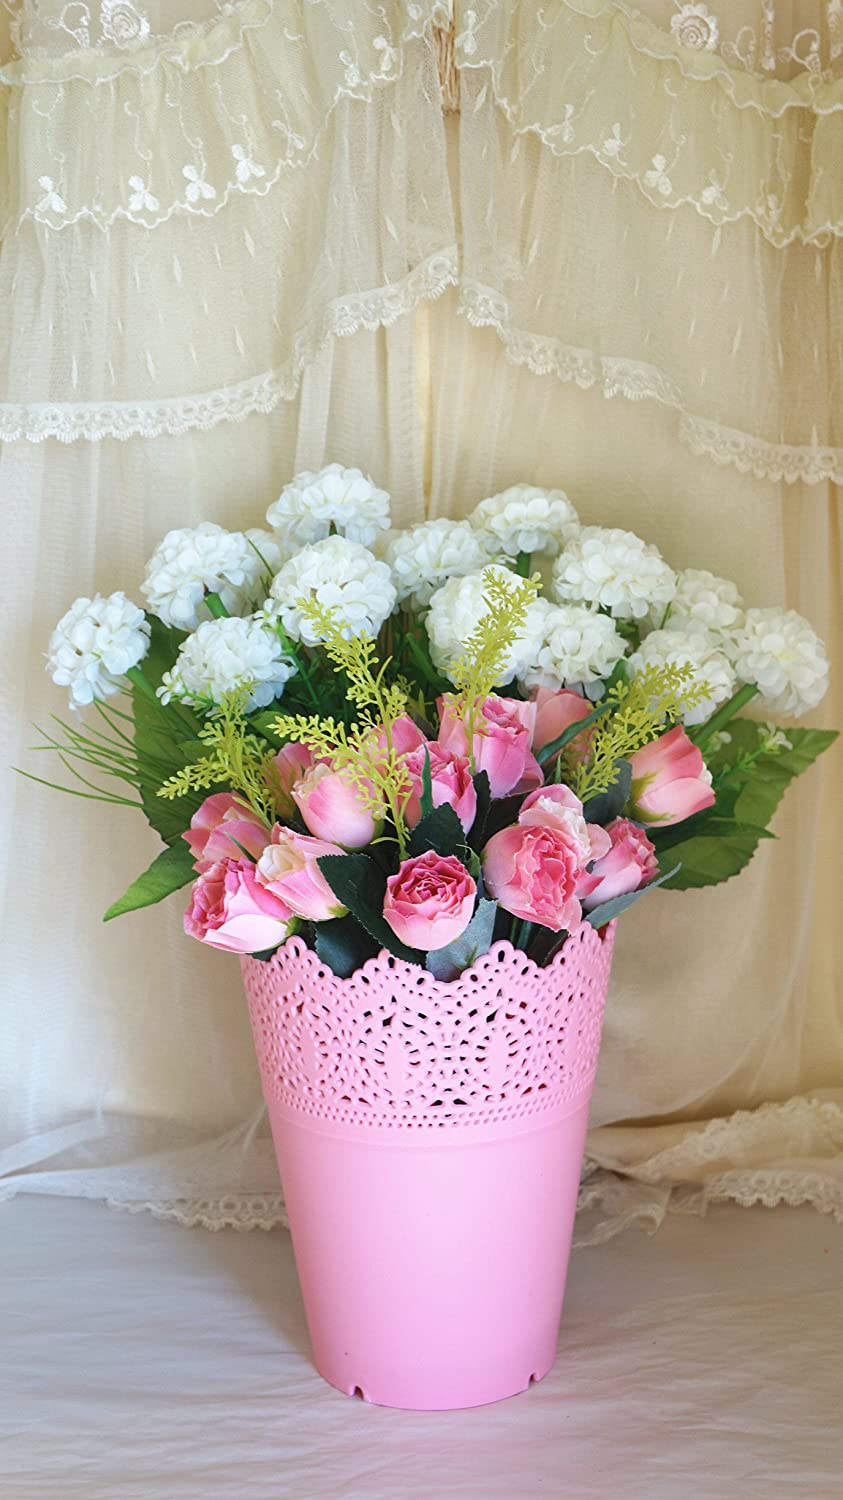 Sweet Home 11'' Pink Rose Buds Silk Artificial Flower Arrangement Mixed with Two White Hydrangea Chrysanthemum Bushes w/ Pink Hollow Plastic Pot